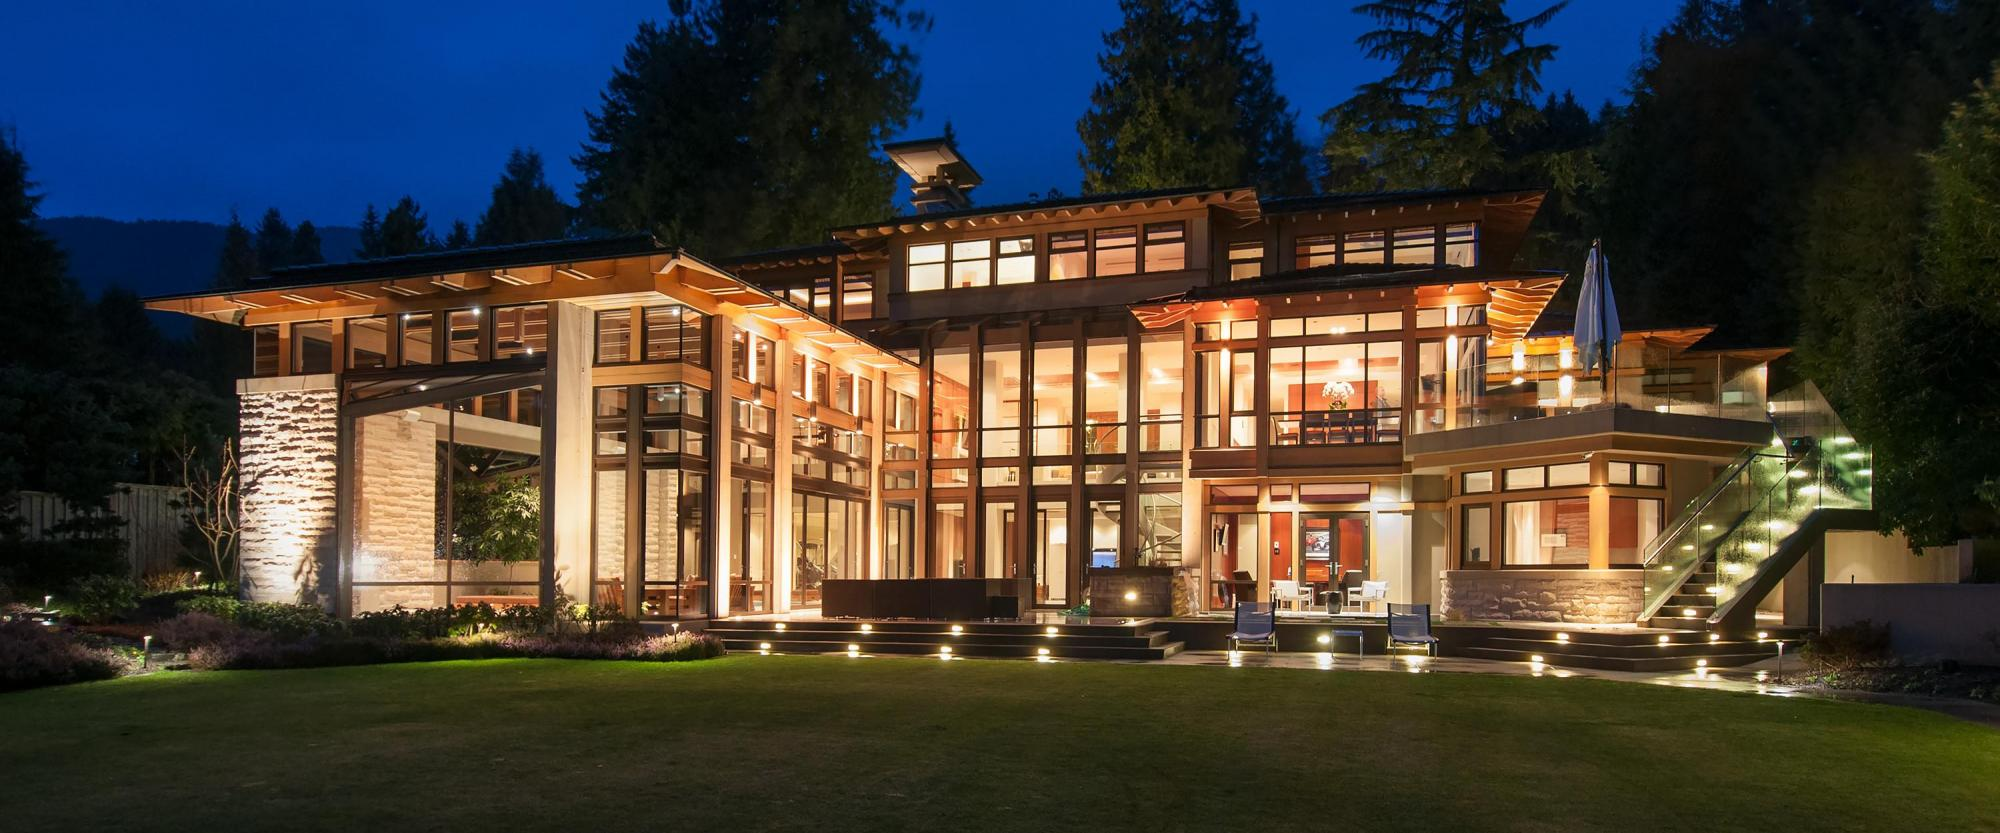 West Vancouver Real Estate Luxury Homes Brock Smeaton